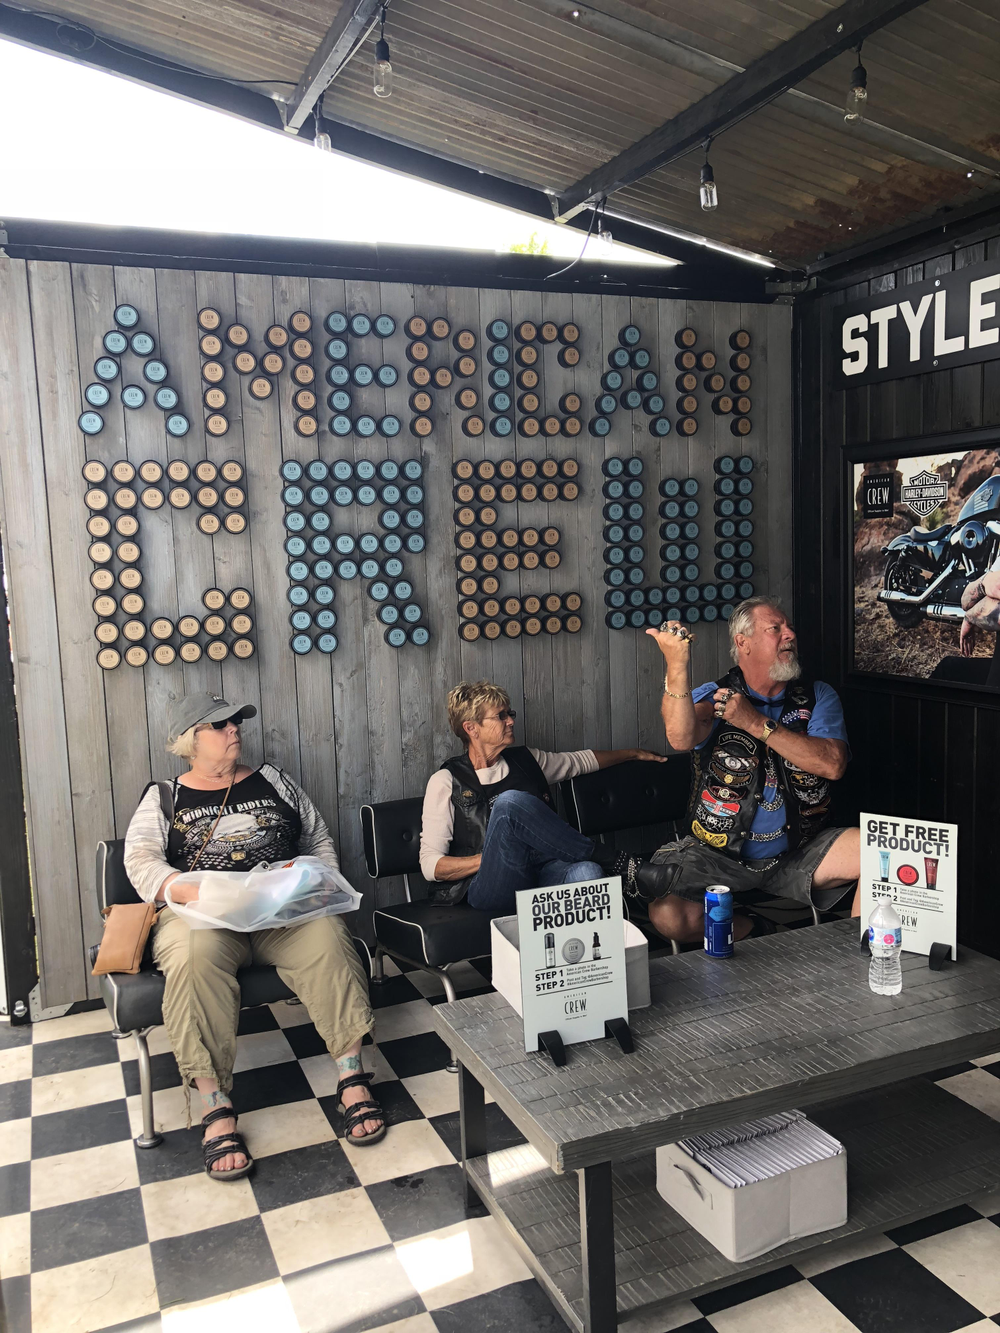 American Crew stylists provide complimentary cuts to attendees in a pop-up barbershop.